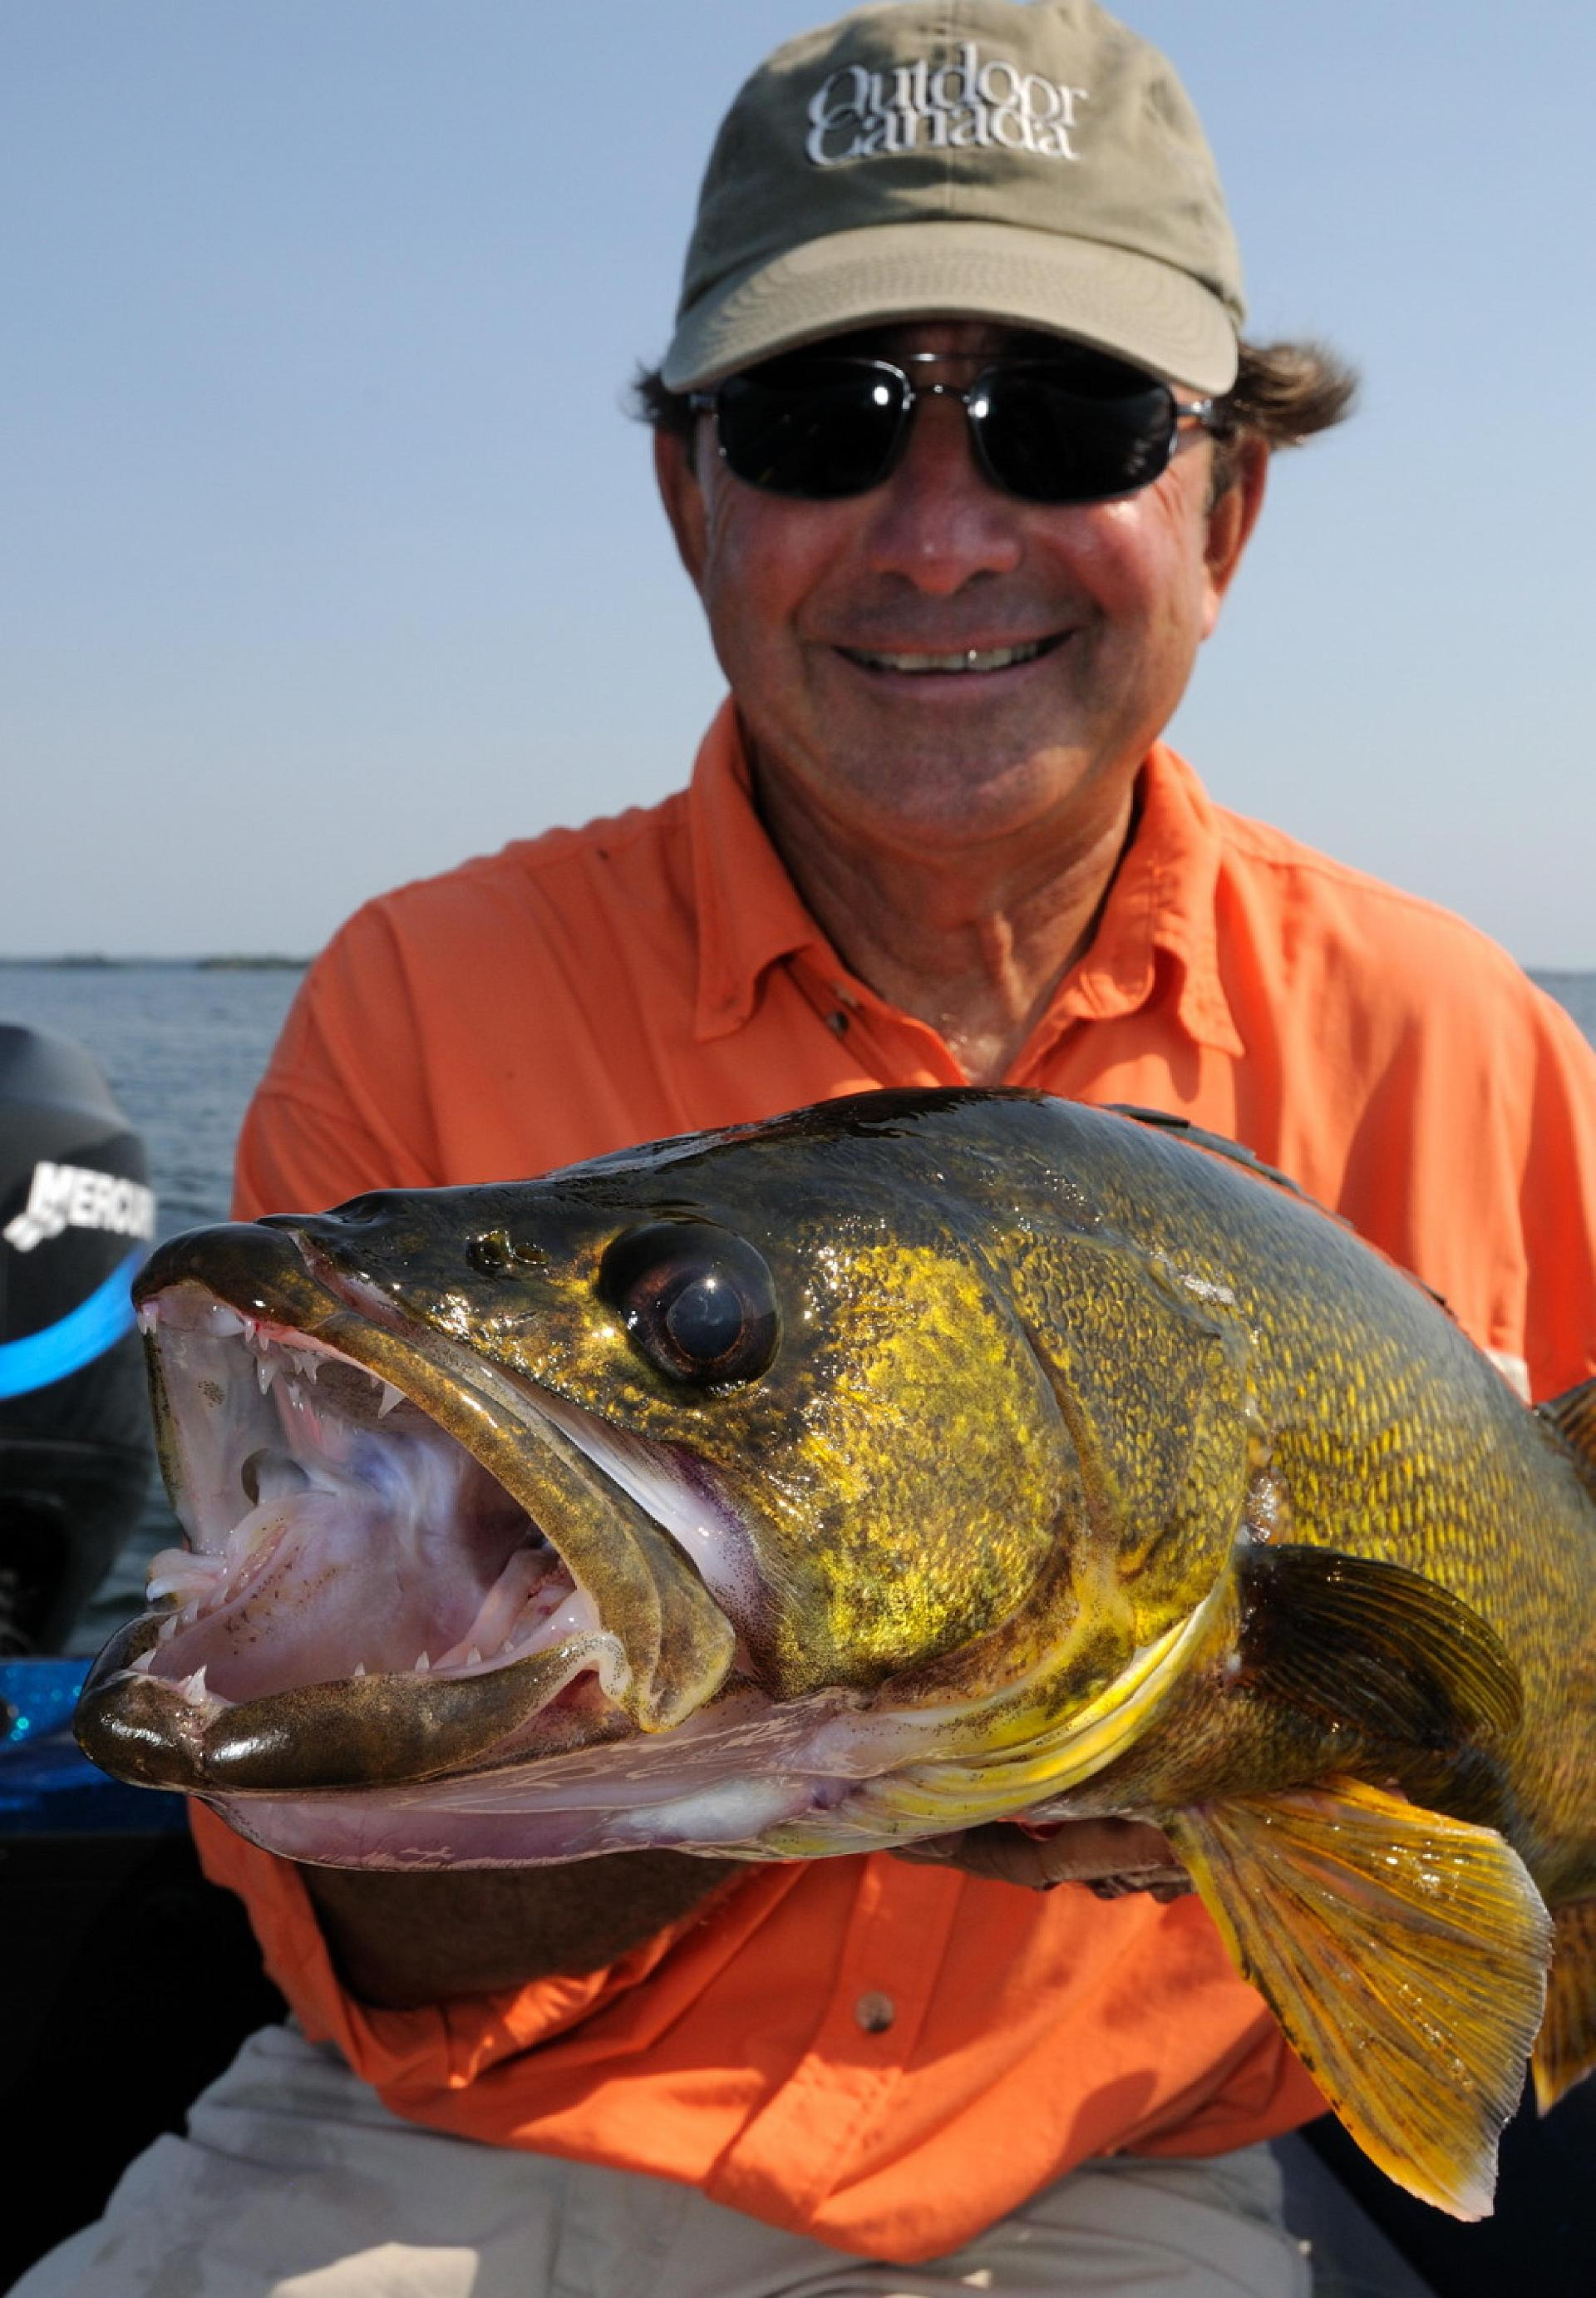 Trolling without downriggers • Outdoor Canada